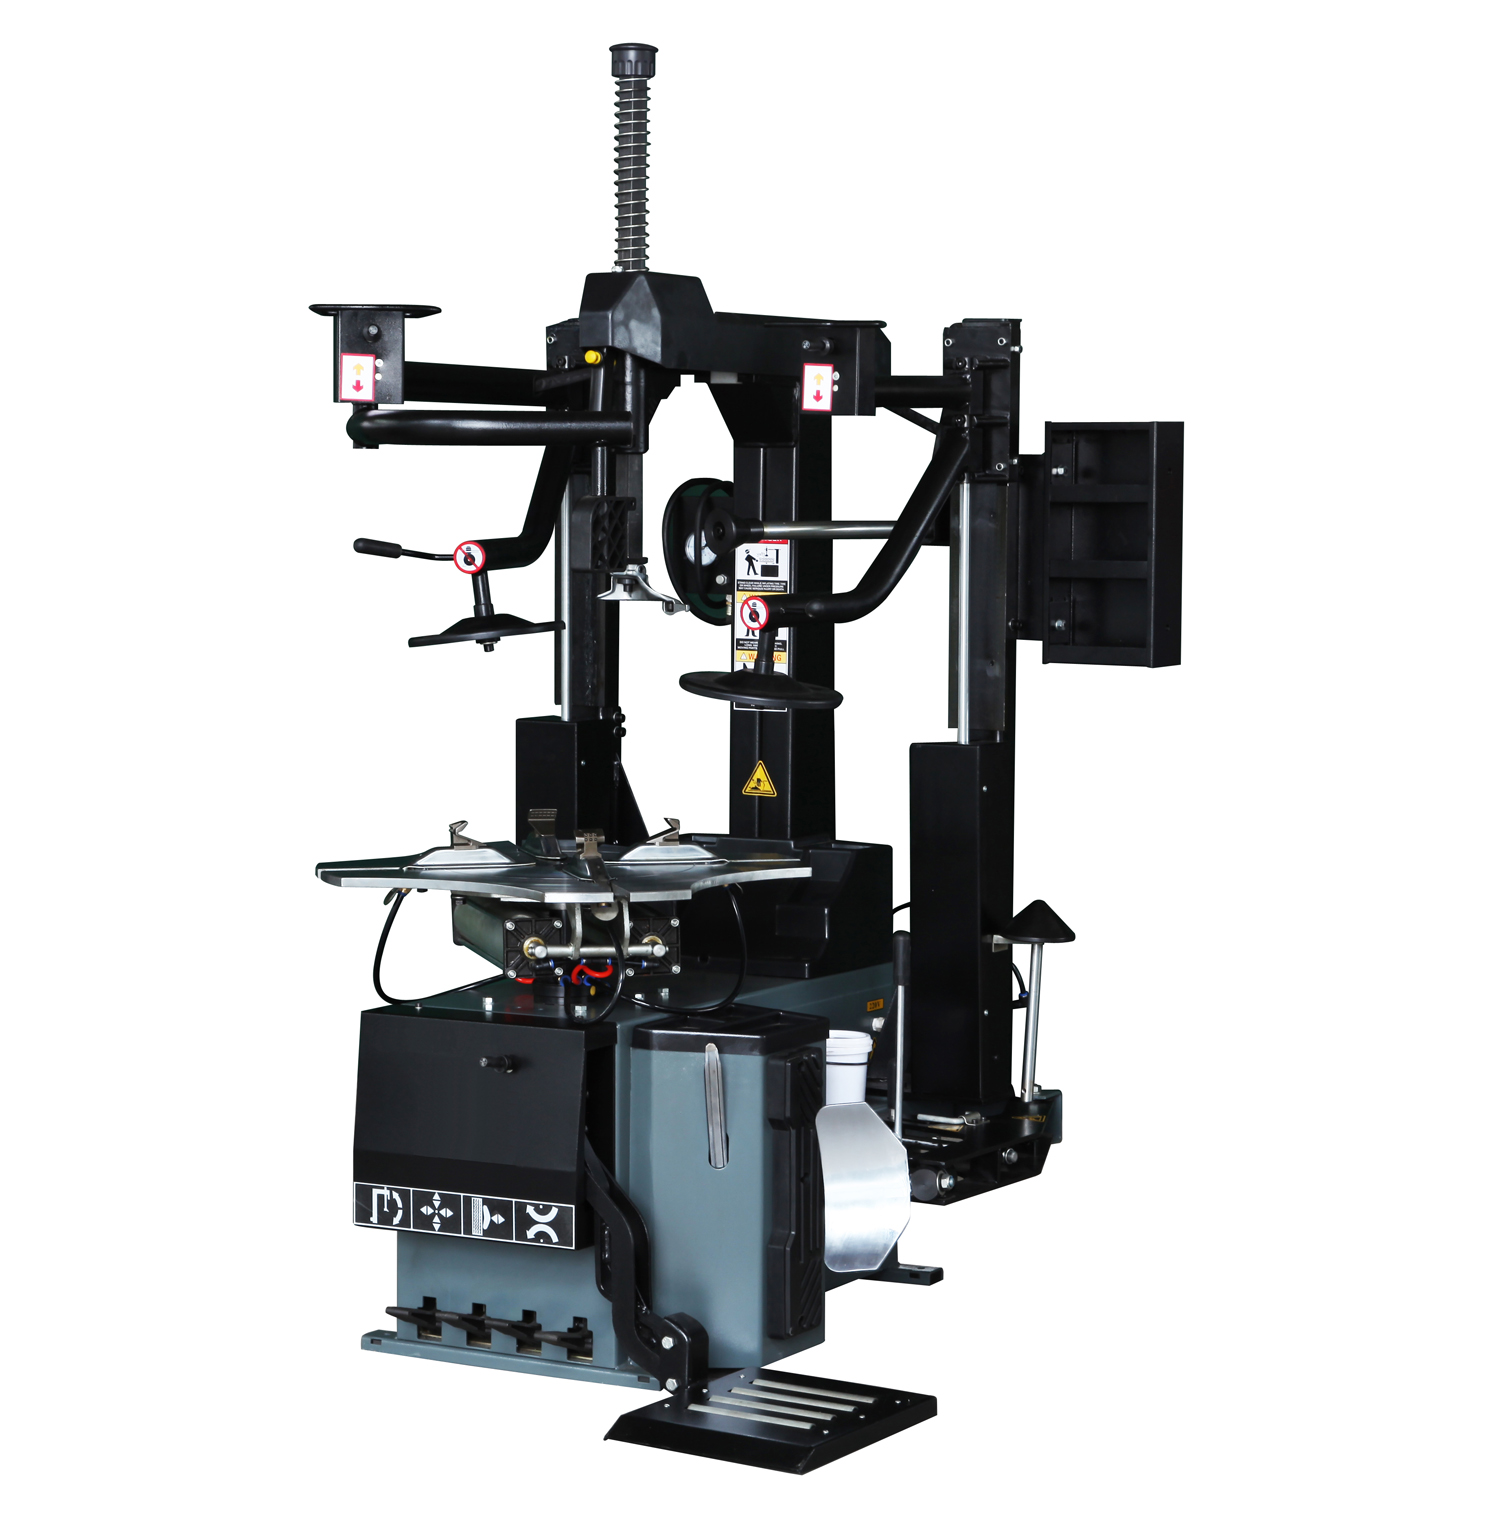 RP-2115 Tire changer